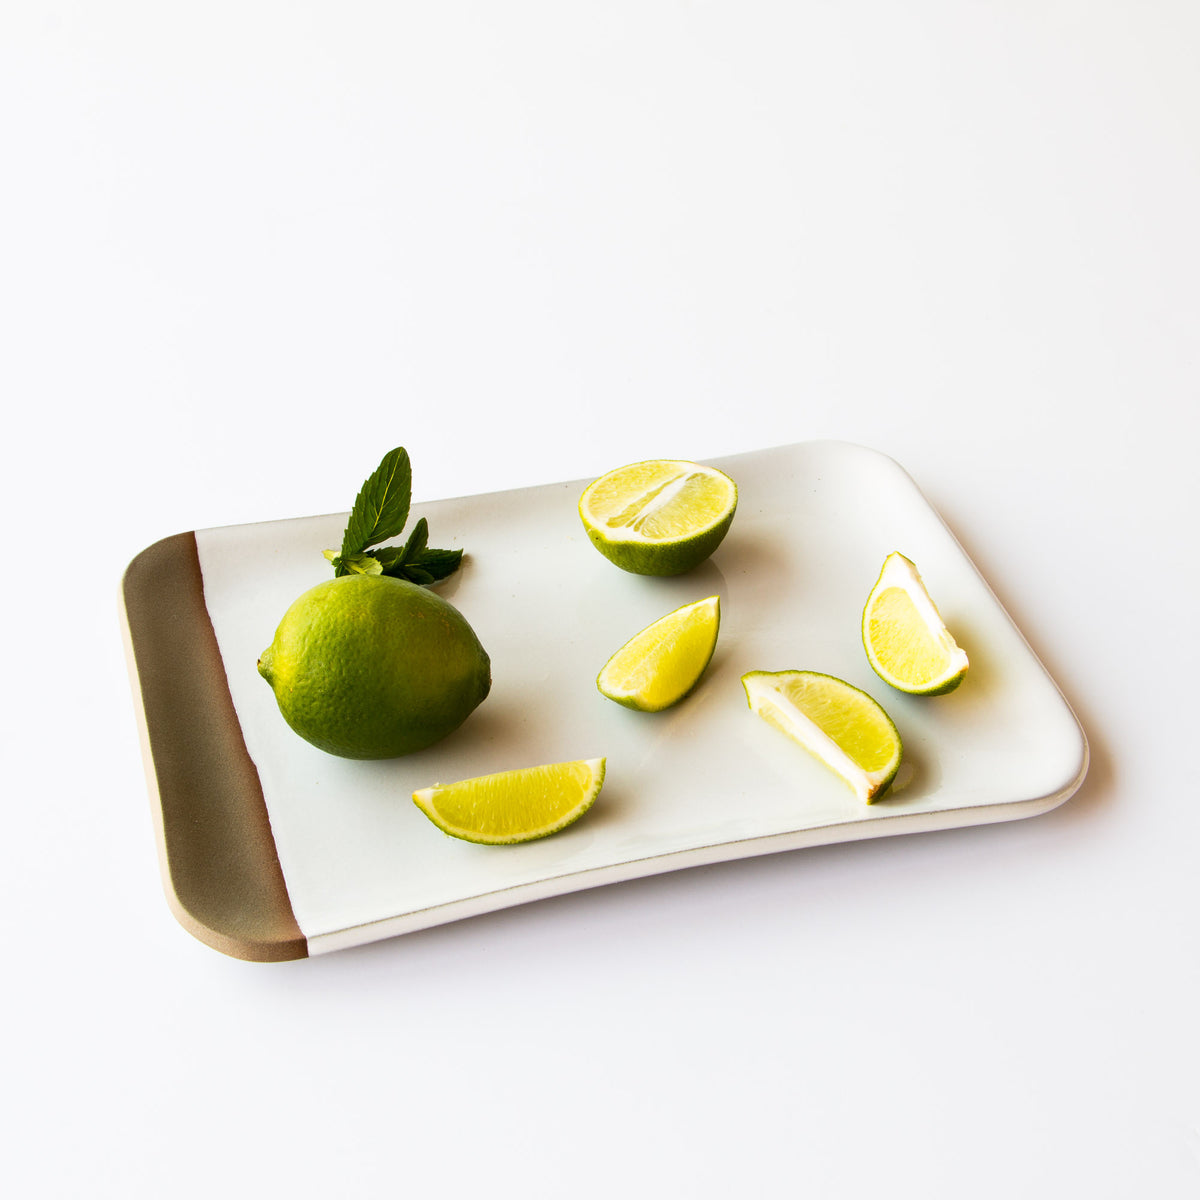 Lookbook - Handmade Ceramic Small Rectangular Serving Board - Chic & Basta